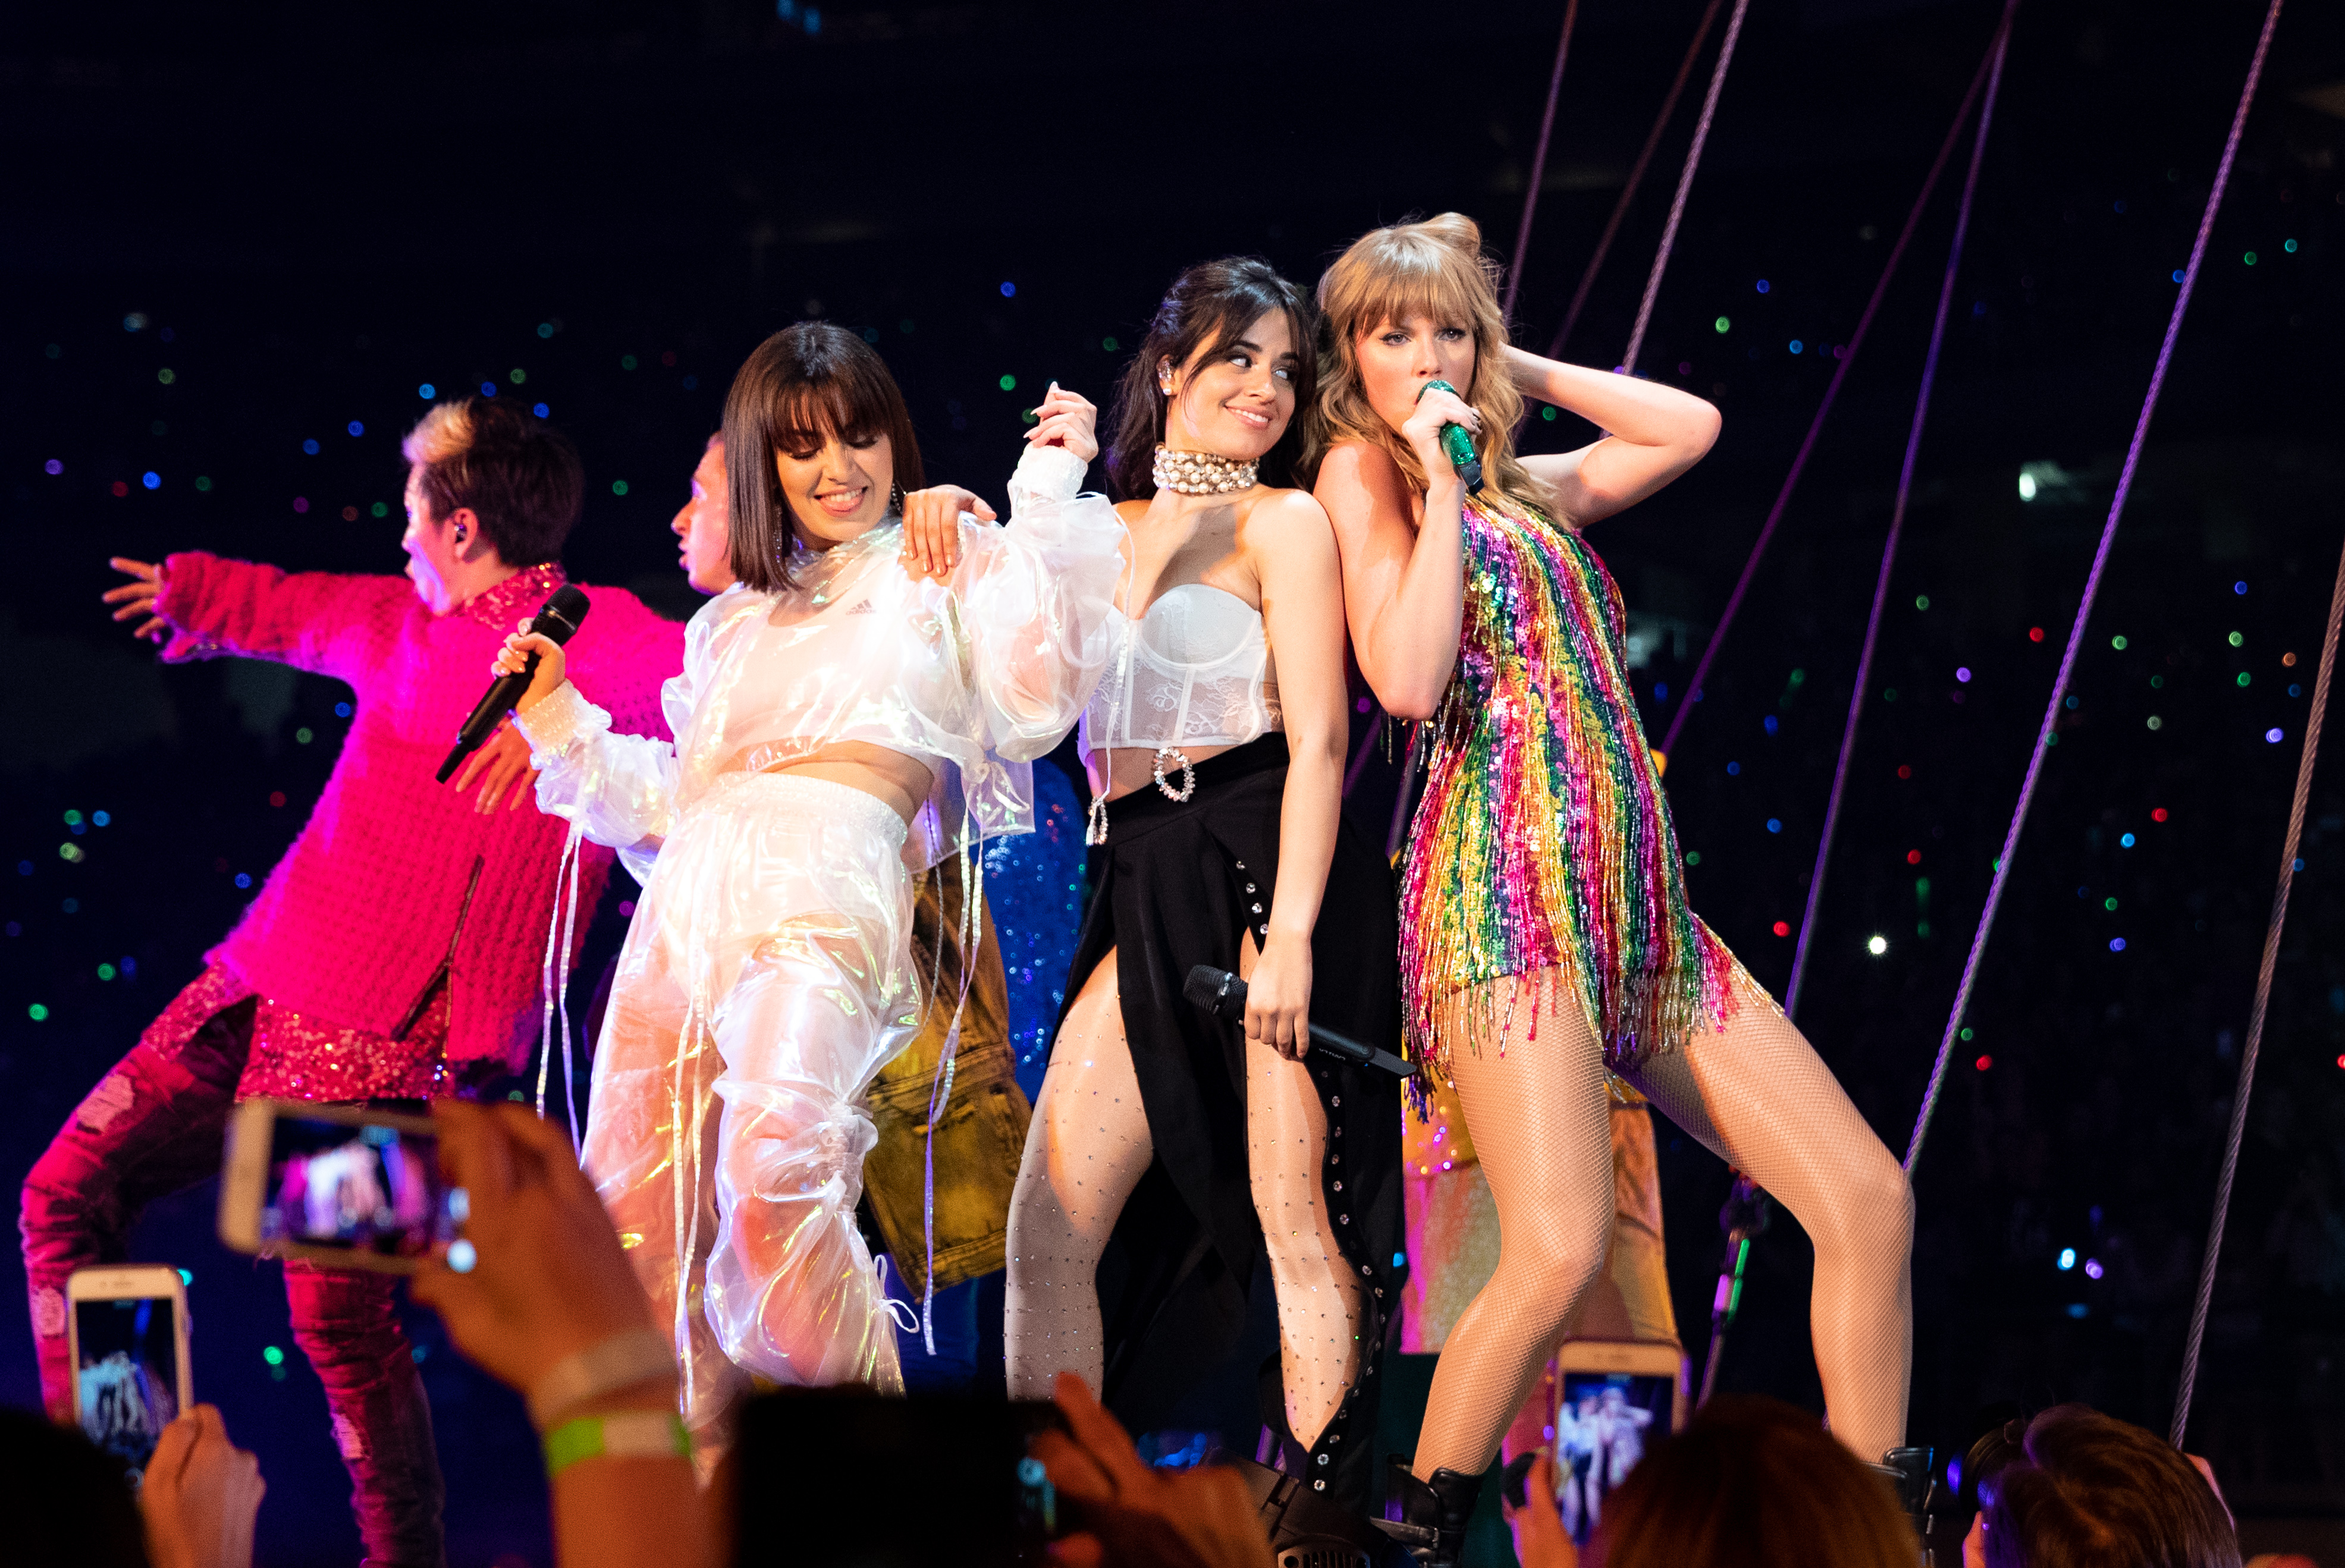 Charli XCX, Camila Cabello and Taylor Swift perform onstage during opening night of Taylor Swift's 2018 Reputation Stadium Tour at University of Phoenix Stadium on May 8, 2018 in Glendale, Arizona